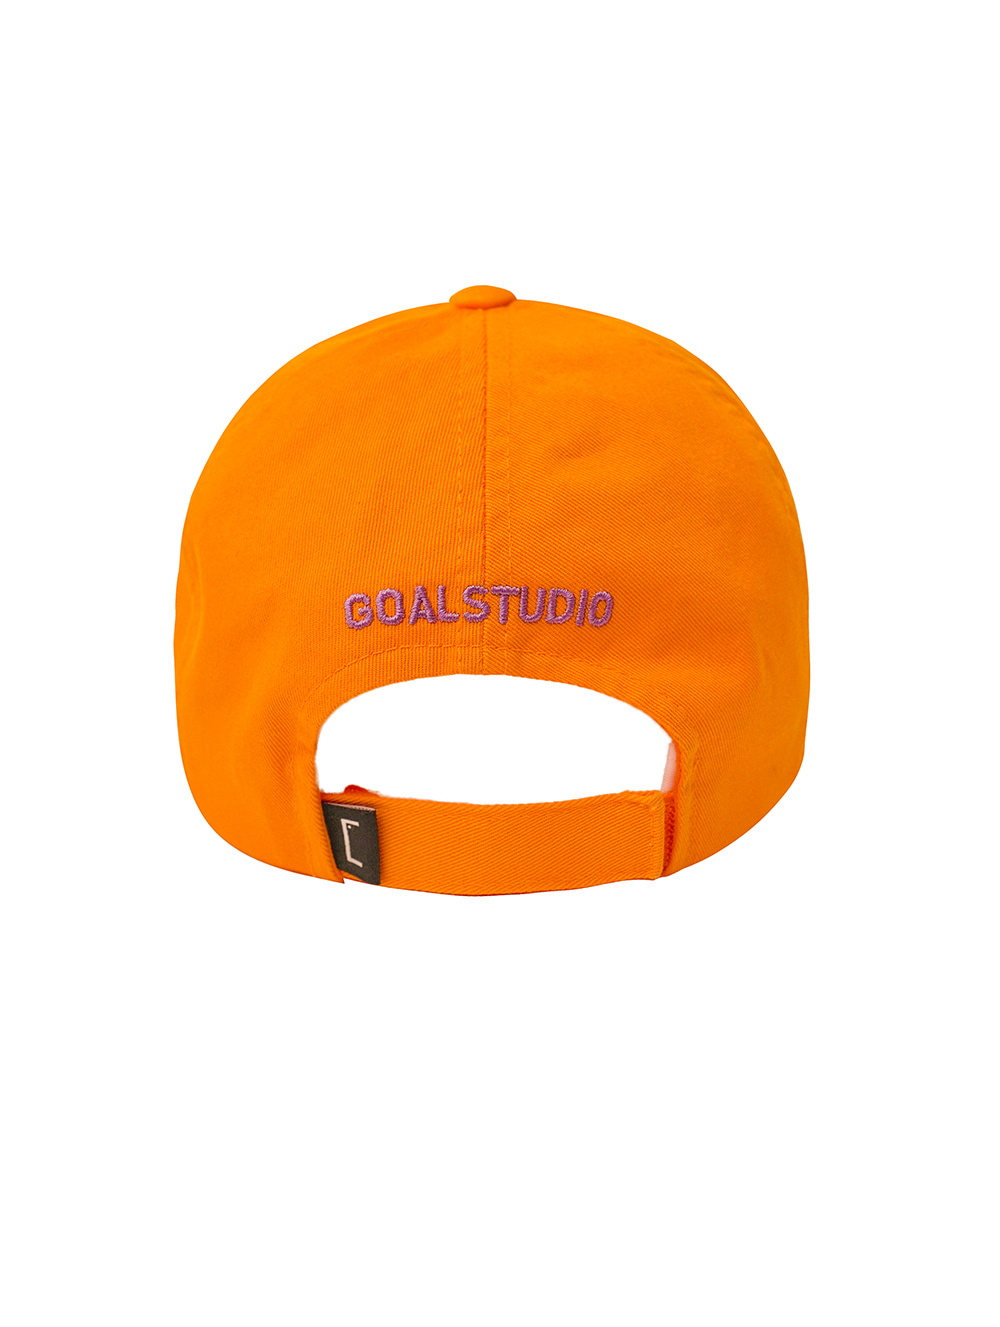 CELEBRATION CAP - ORANGE